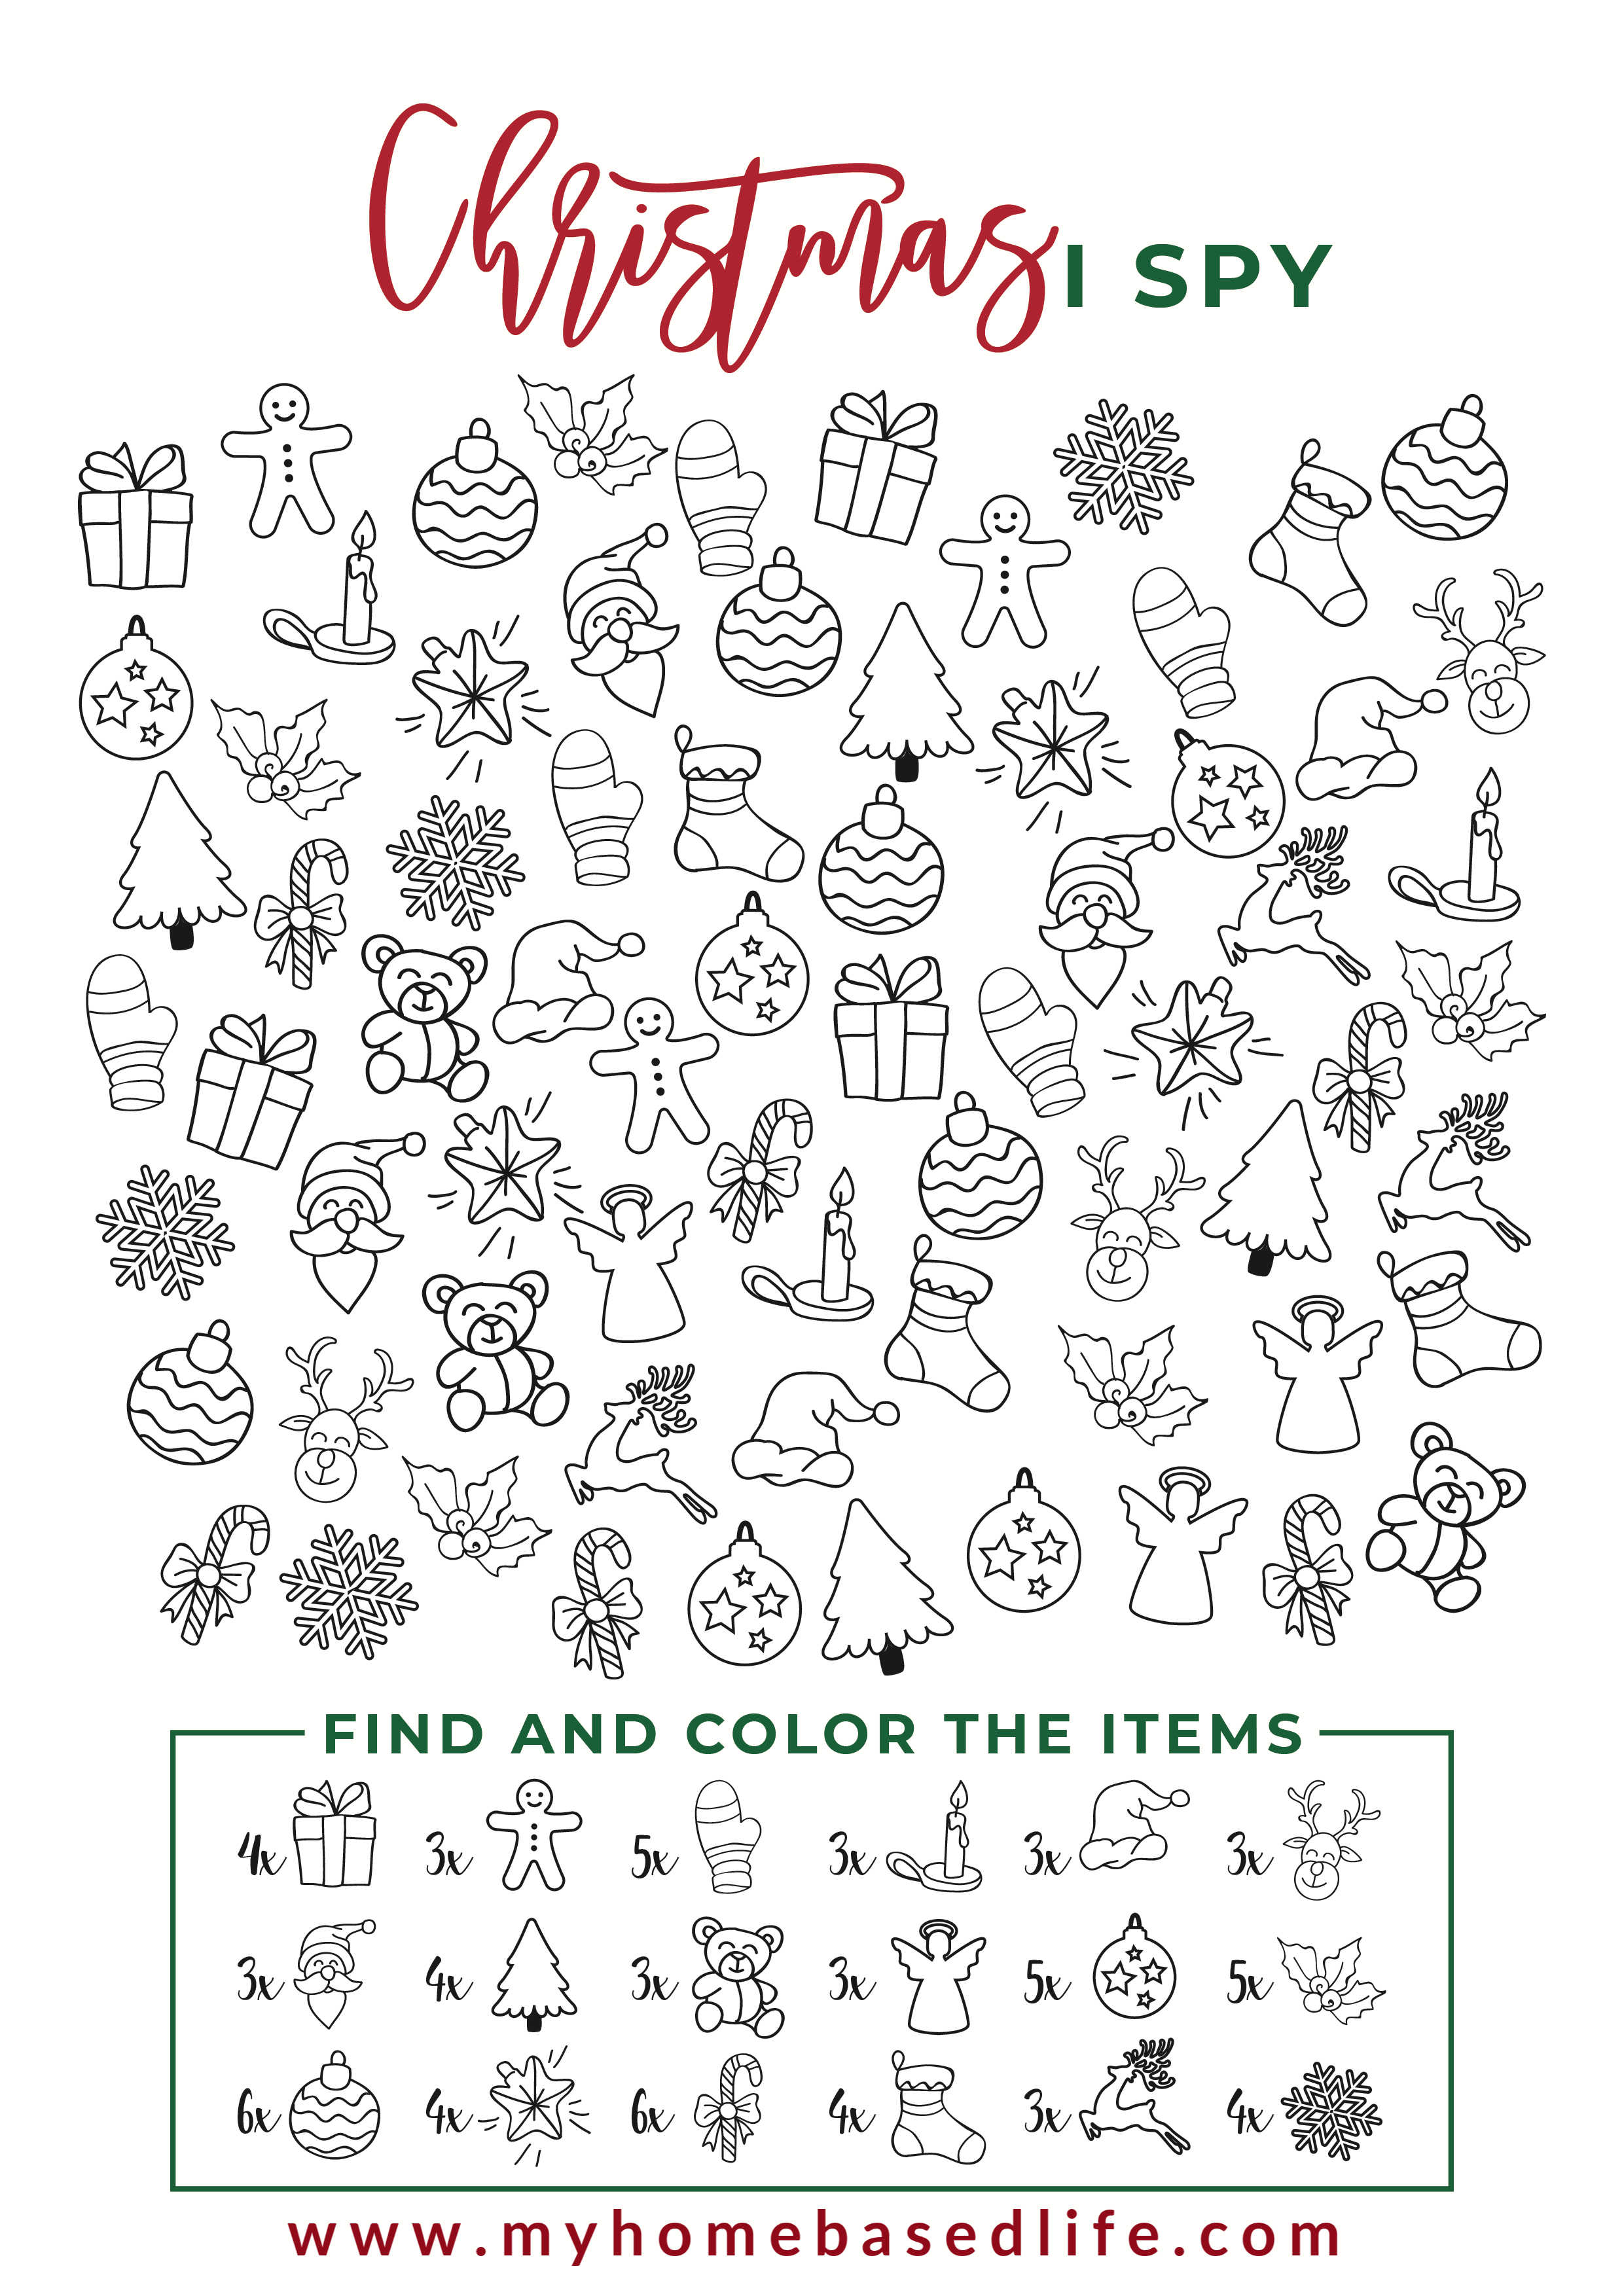 I Spy Christmas Printable